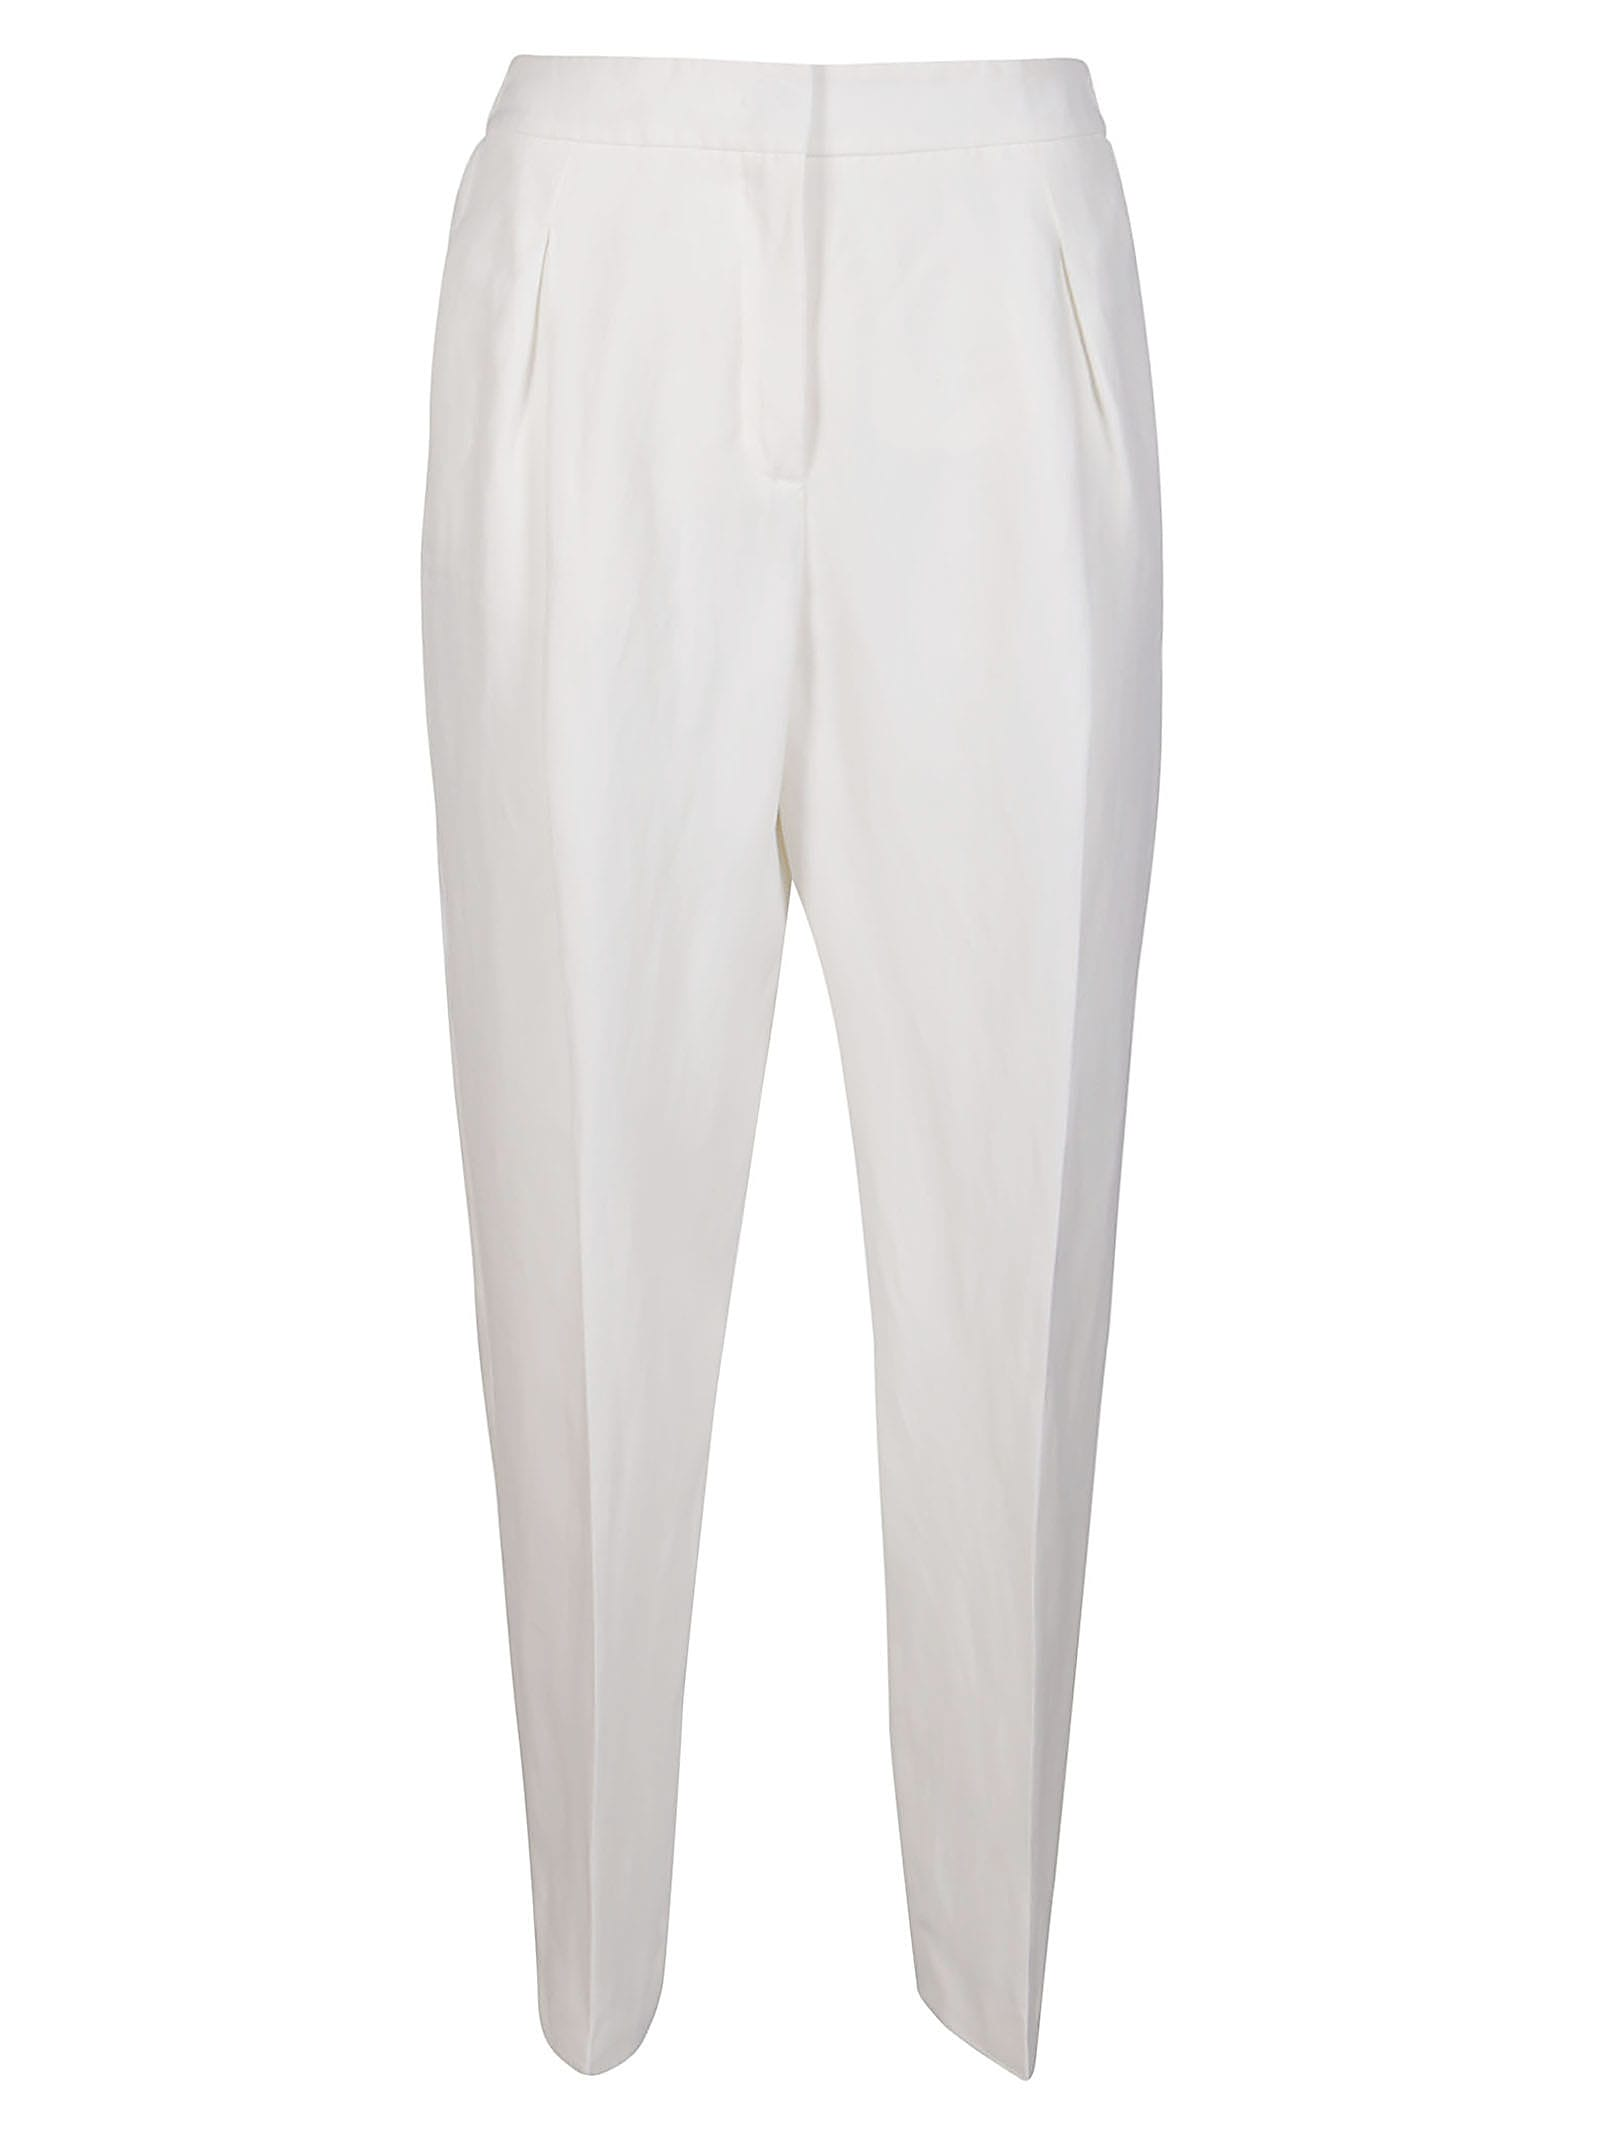 White Viscose-linen Blend Trousers